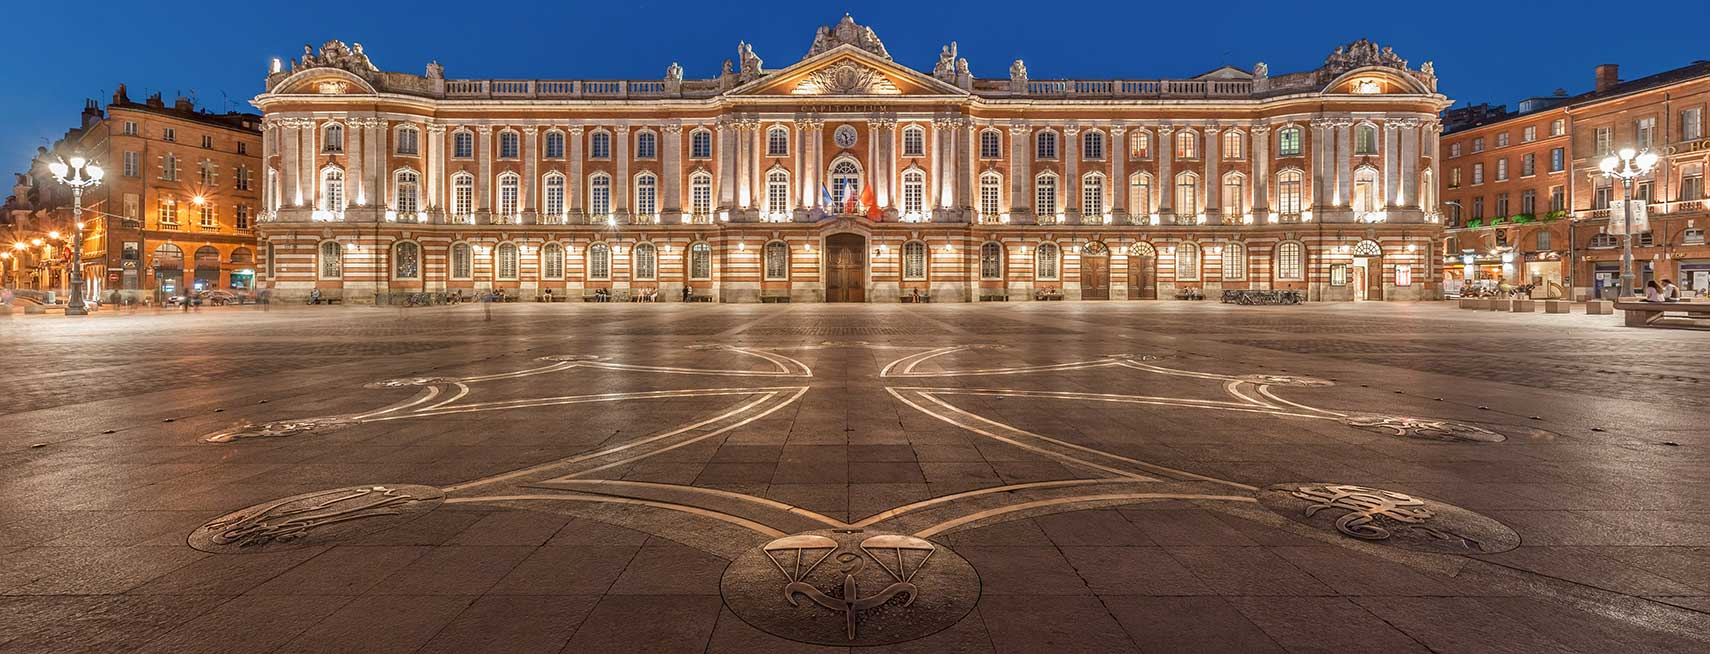 Capitole of Toulouse and Place du Capitole, Toulouse, France